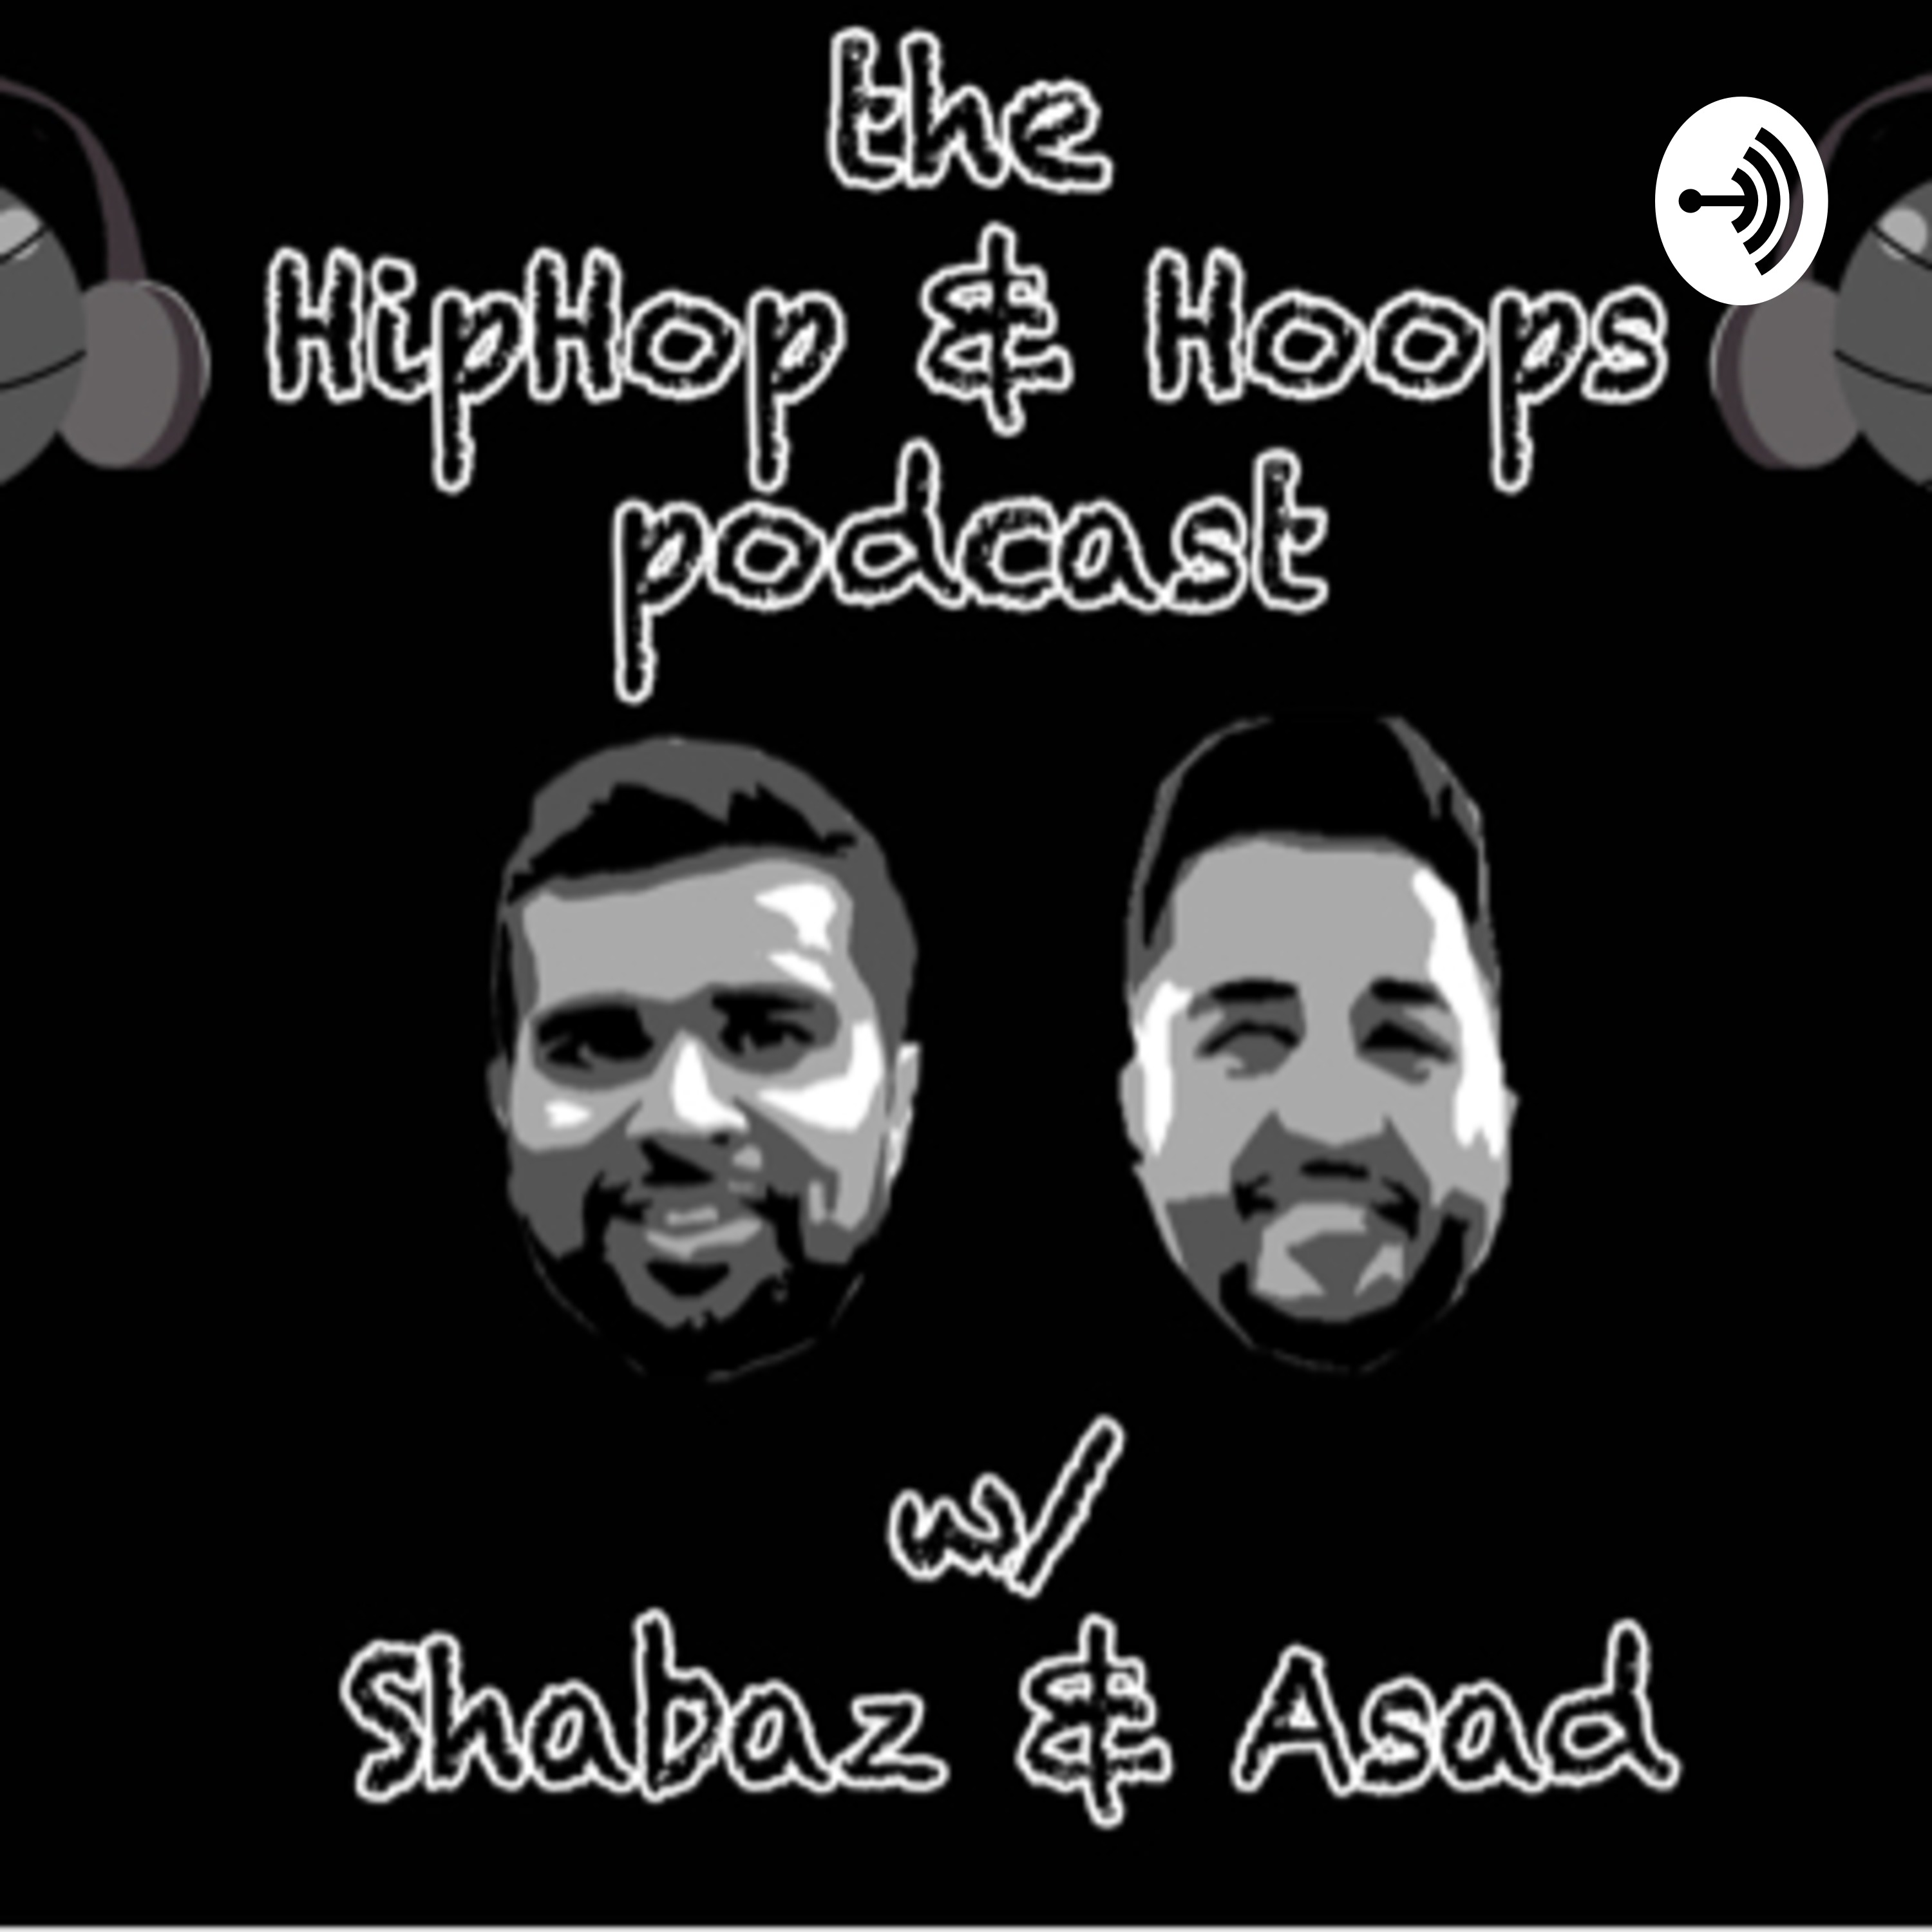 Episode 1: Podcast introduction and NBA playoffs